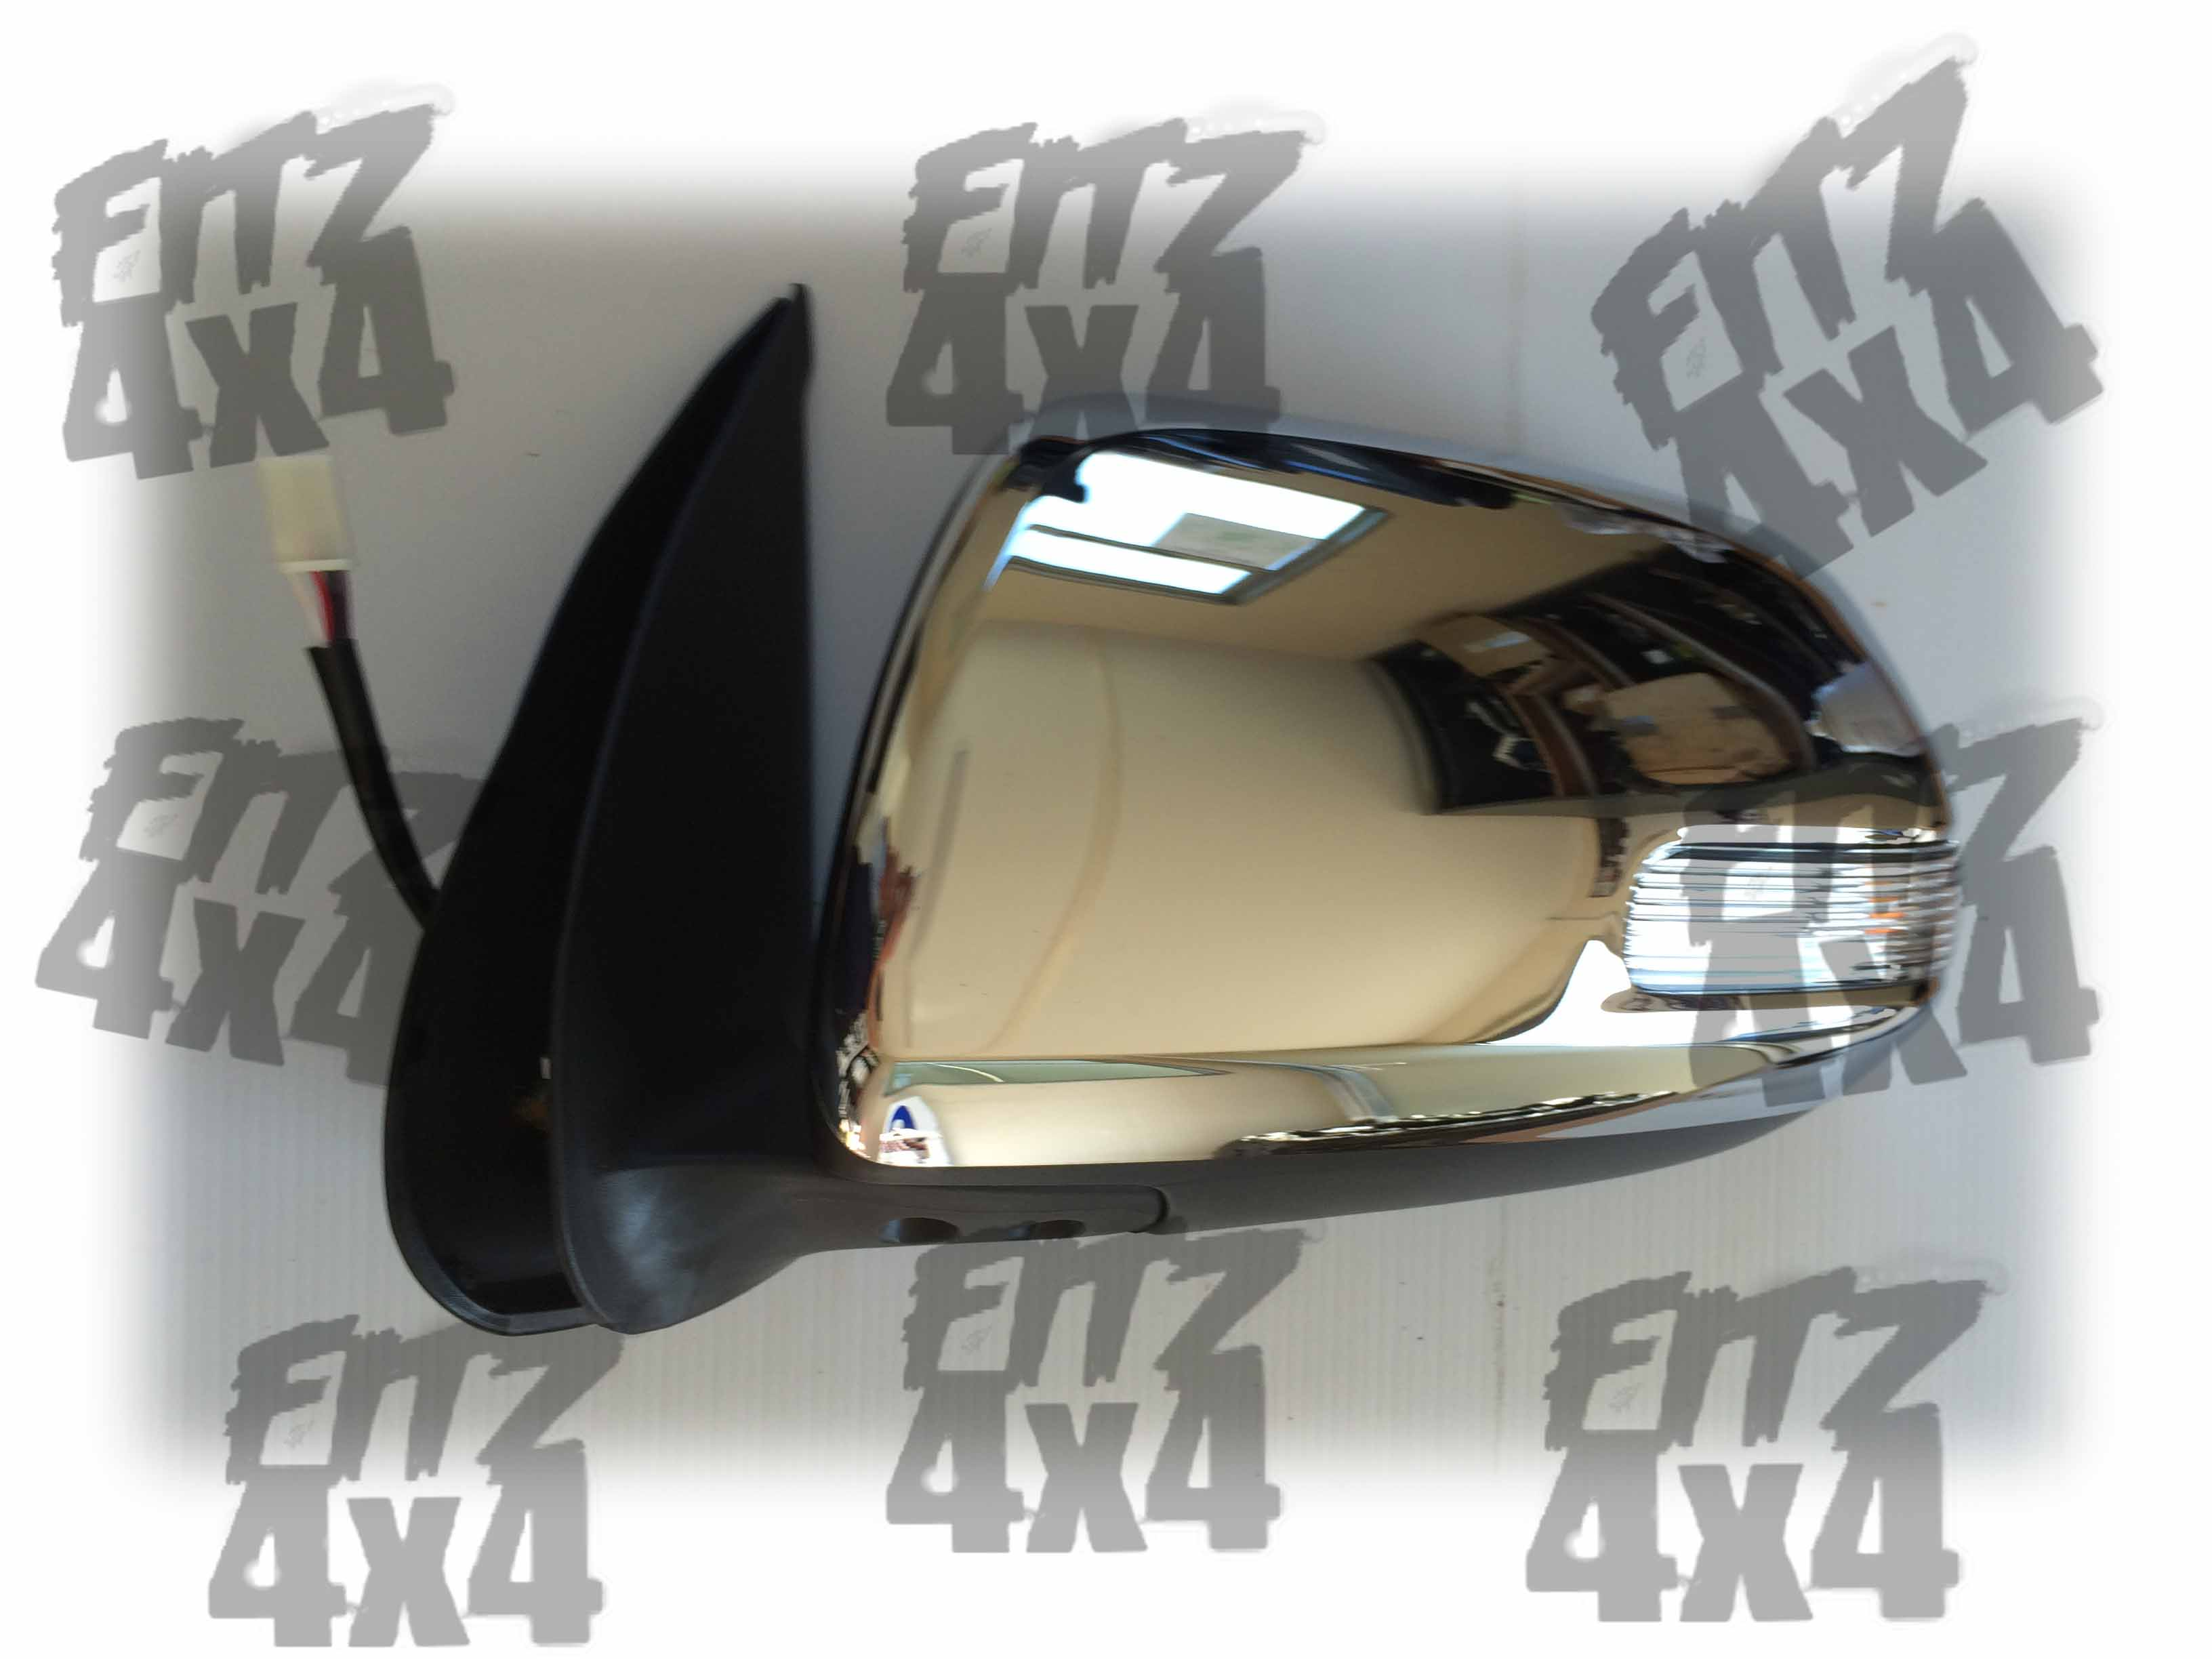 Toyota Hilux Front Left Mirror